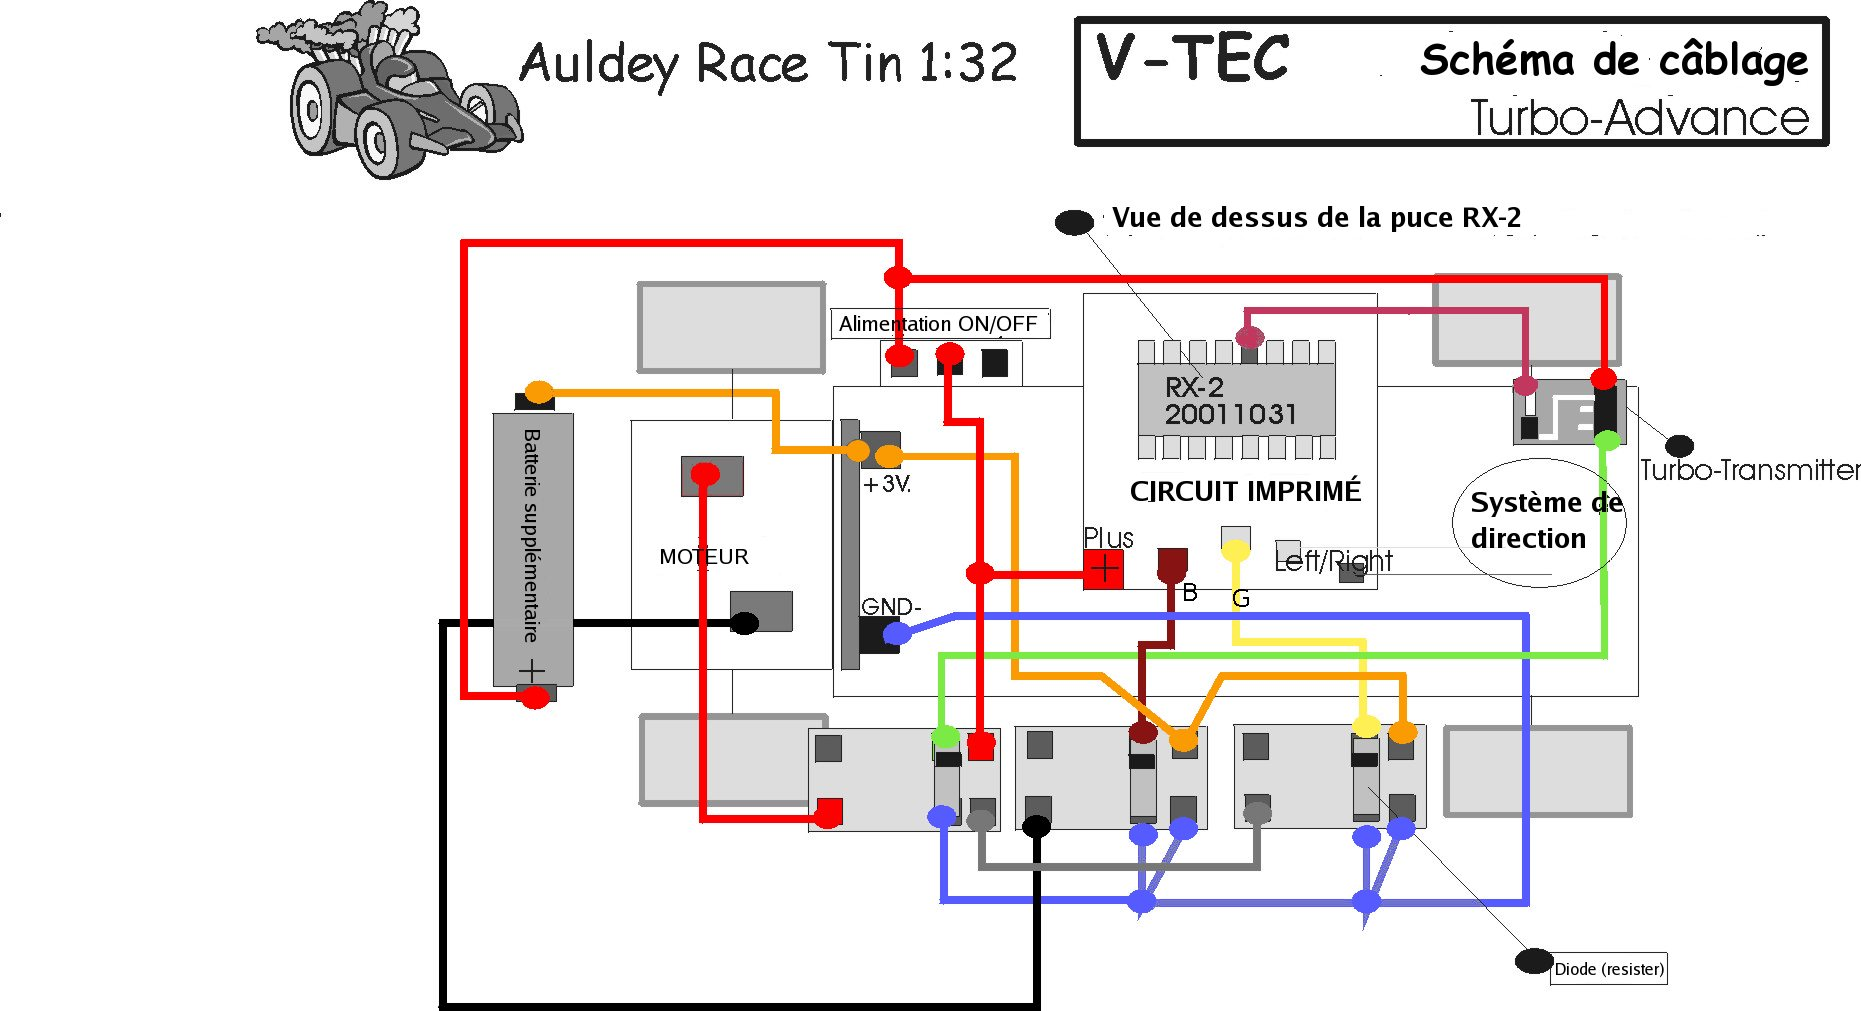 vtec_turbo d15b vtec wiring diagram sensor diagram, speed diagram, honda vtec wiring diagram obd1 at reclaimingppi.co